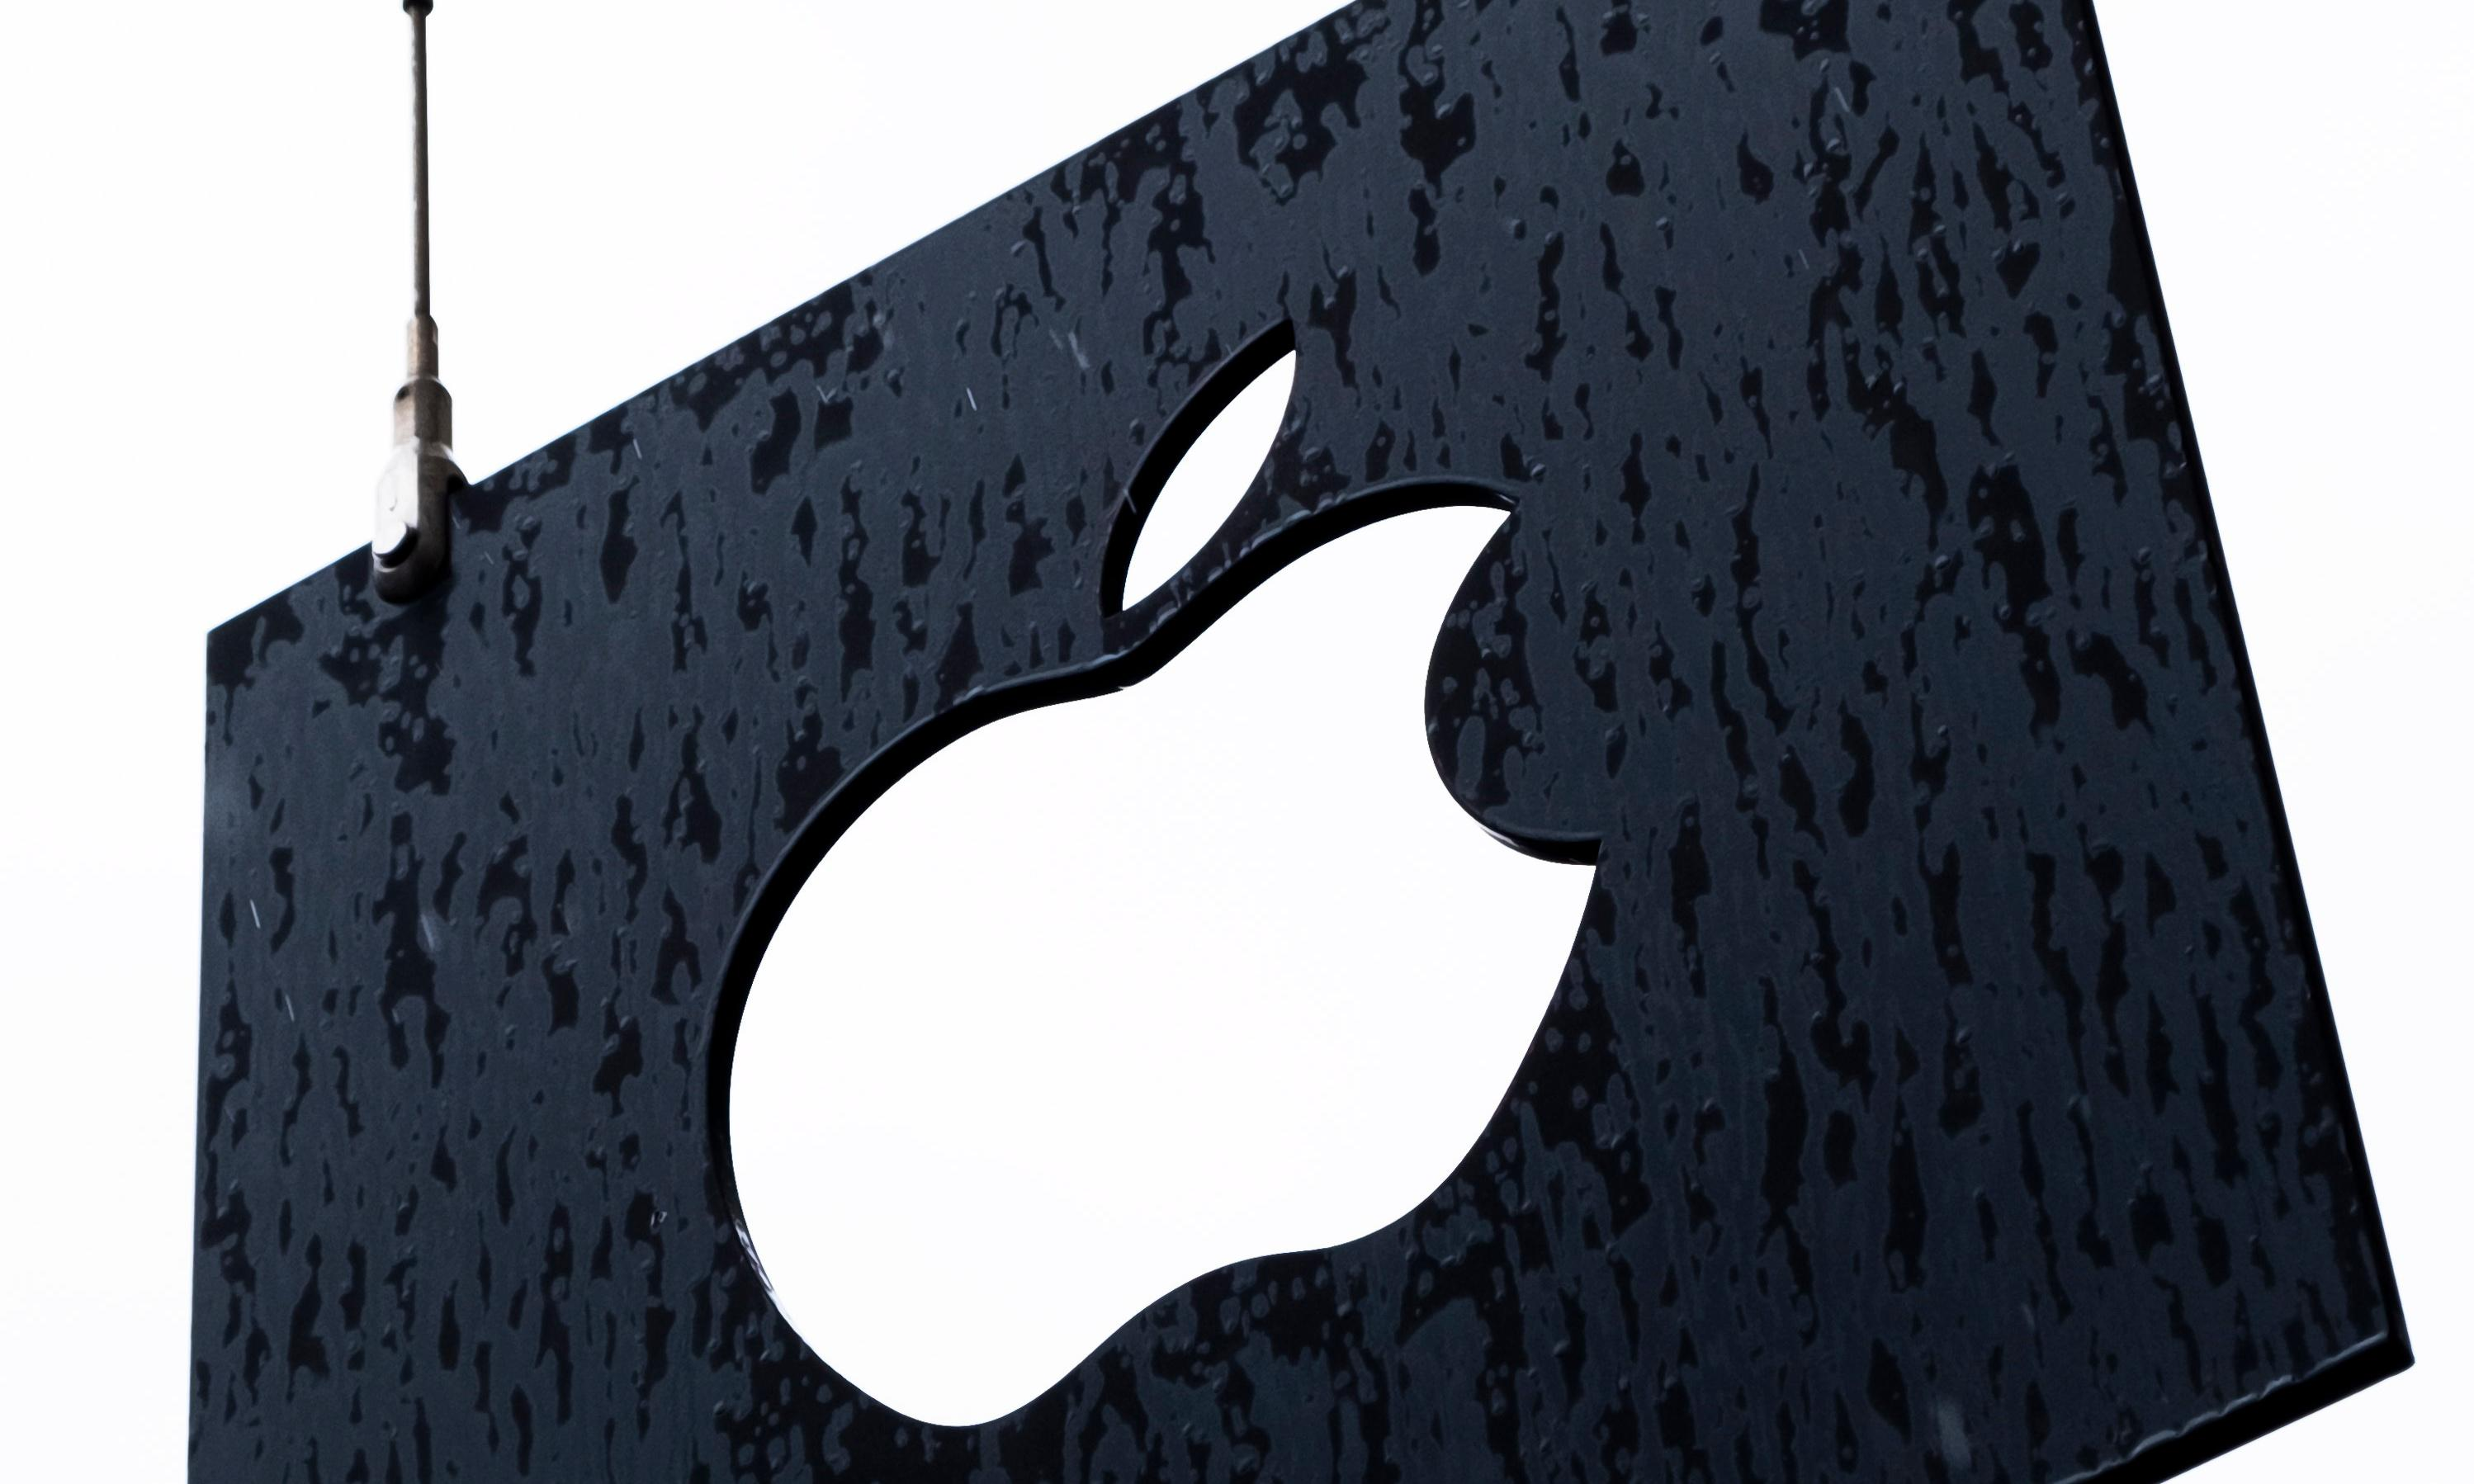 Adelaide teenager gets good-behaviour bond for hacking Apple systems twice